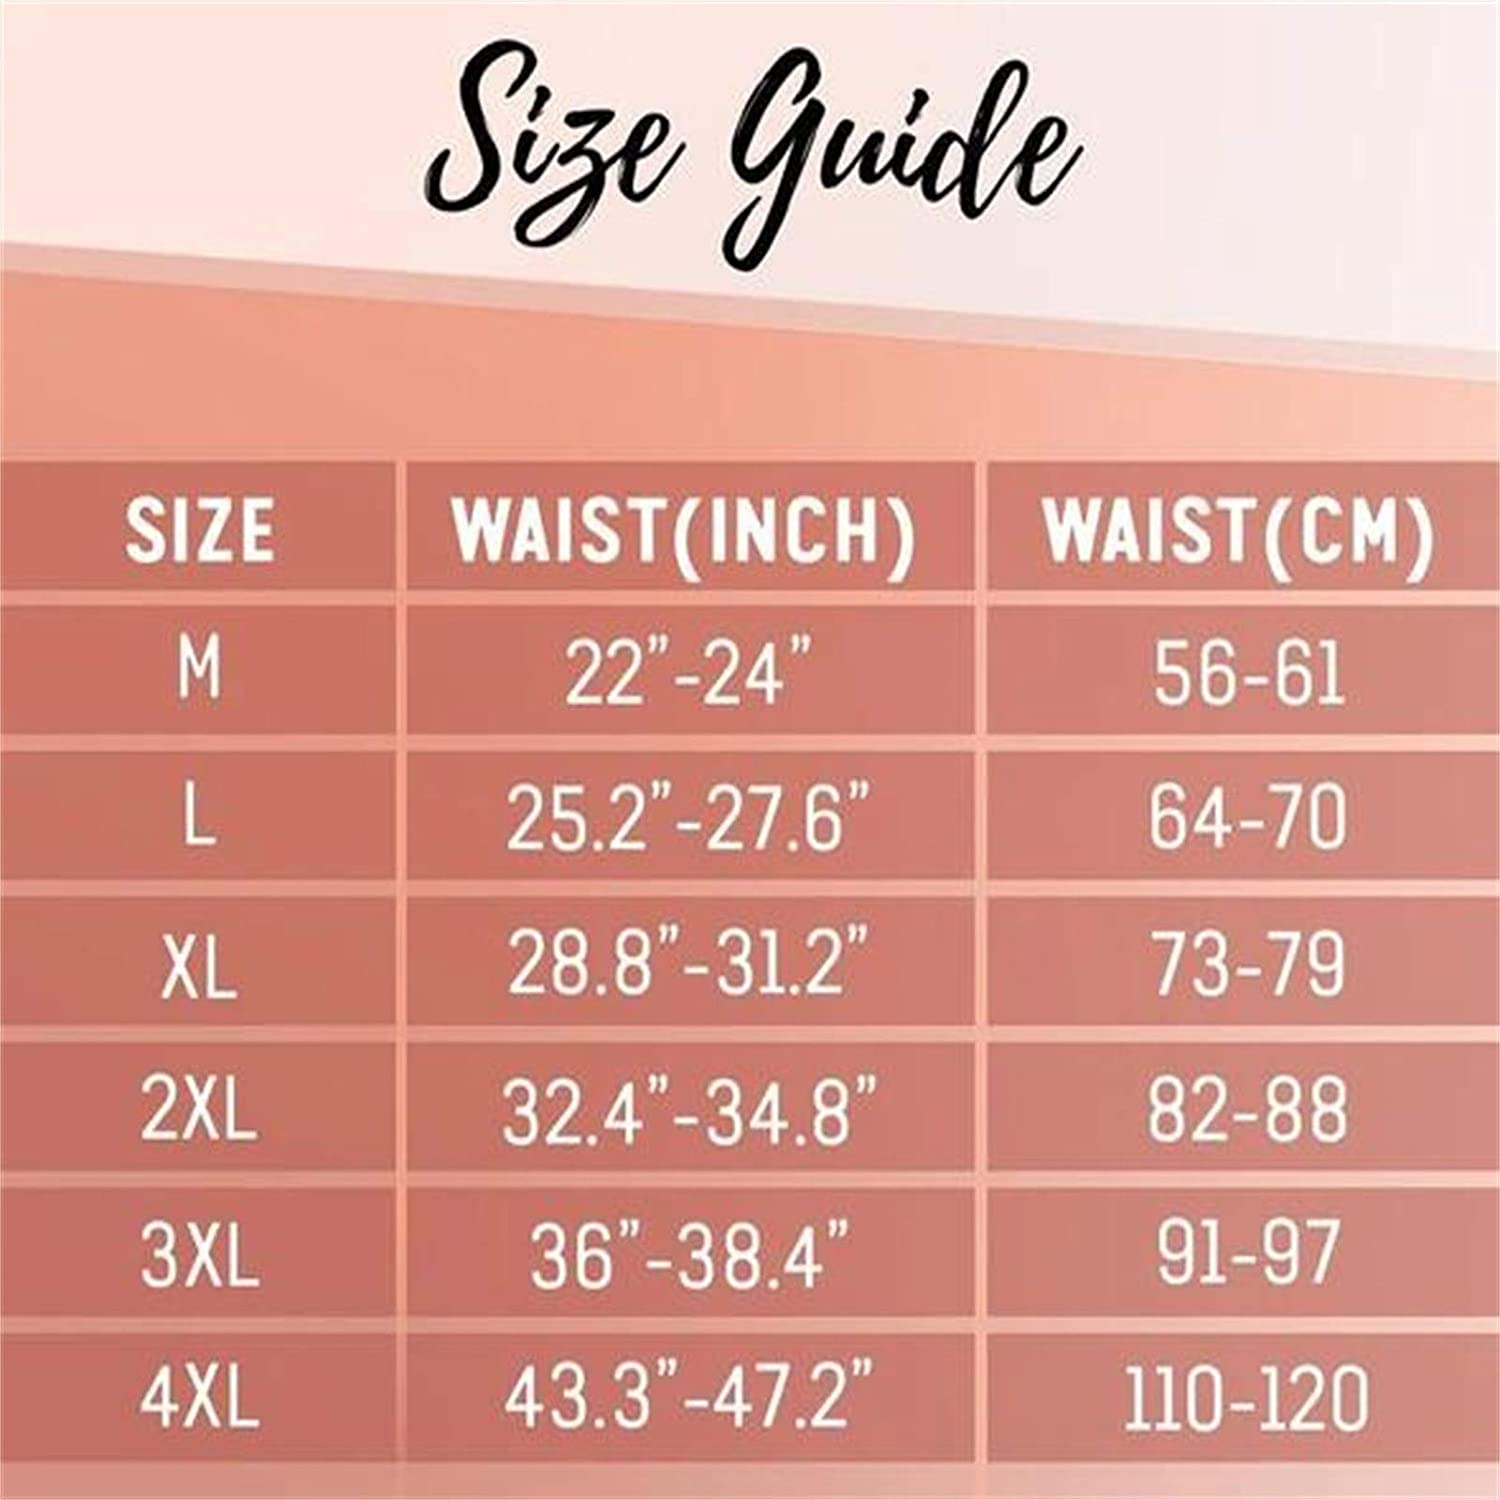 Shapewear for Women Tummy Control,Slim Cross Cover Cellulite Shaping Pants Stretchy Basic Bodysuit